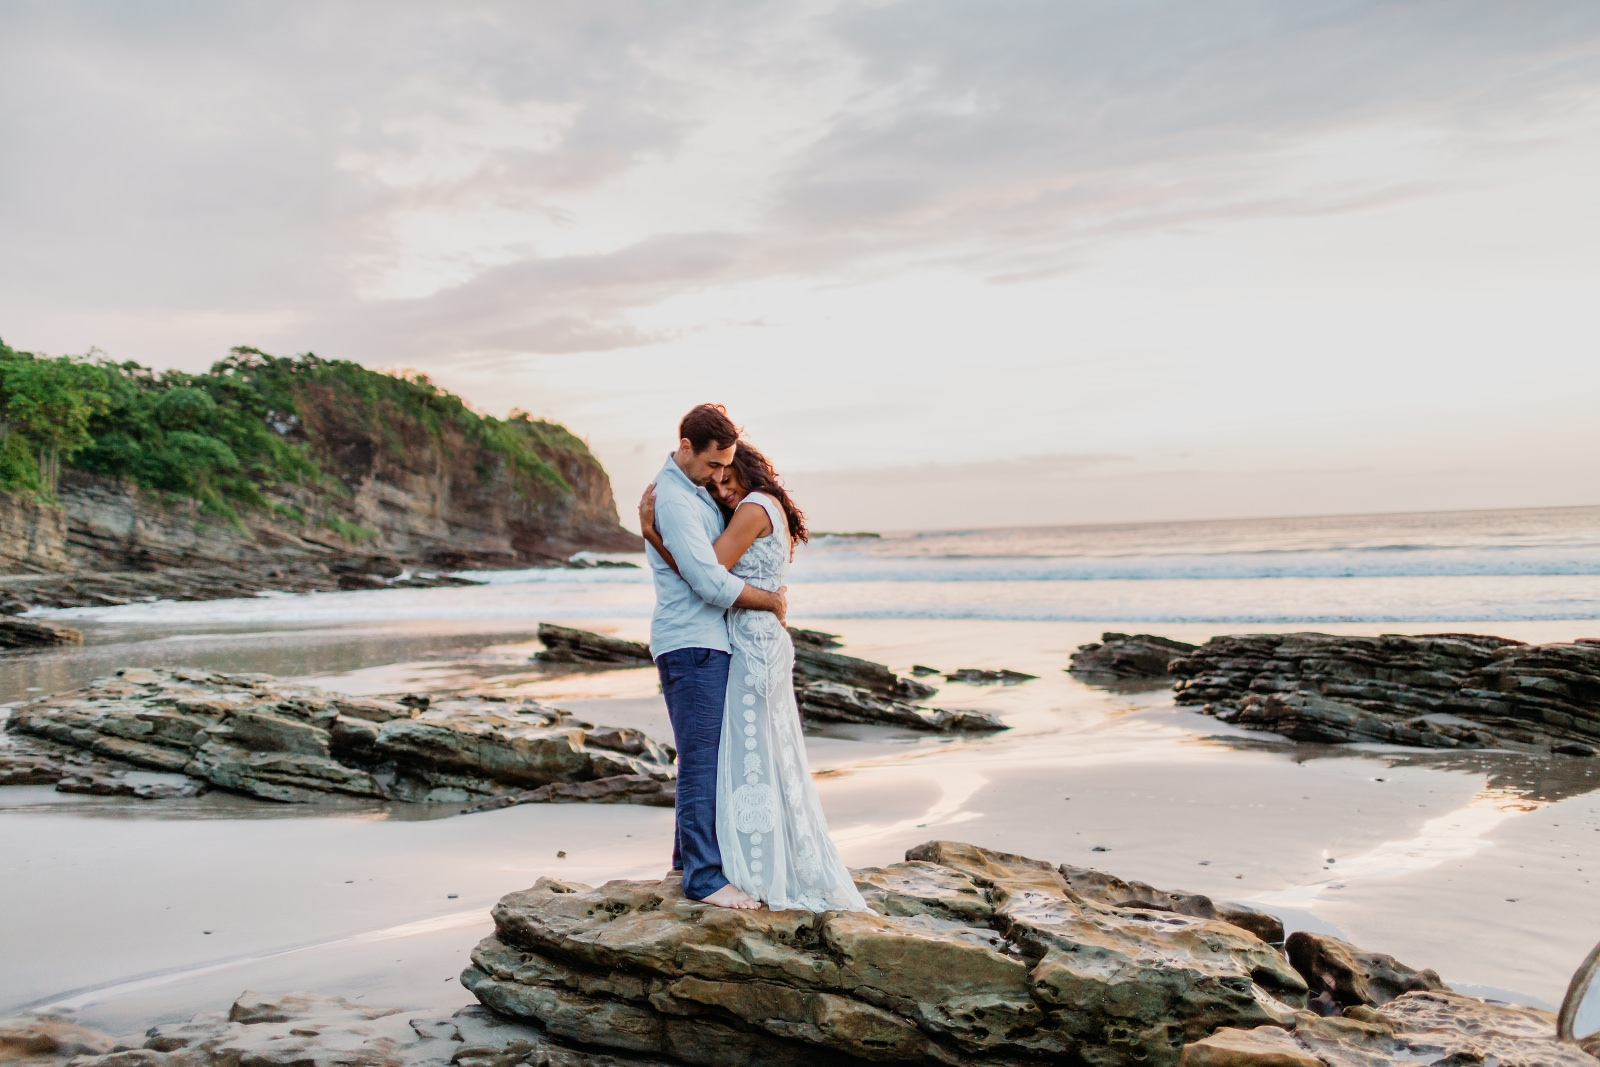 Couple photography beach photo inspiration in Costa rica